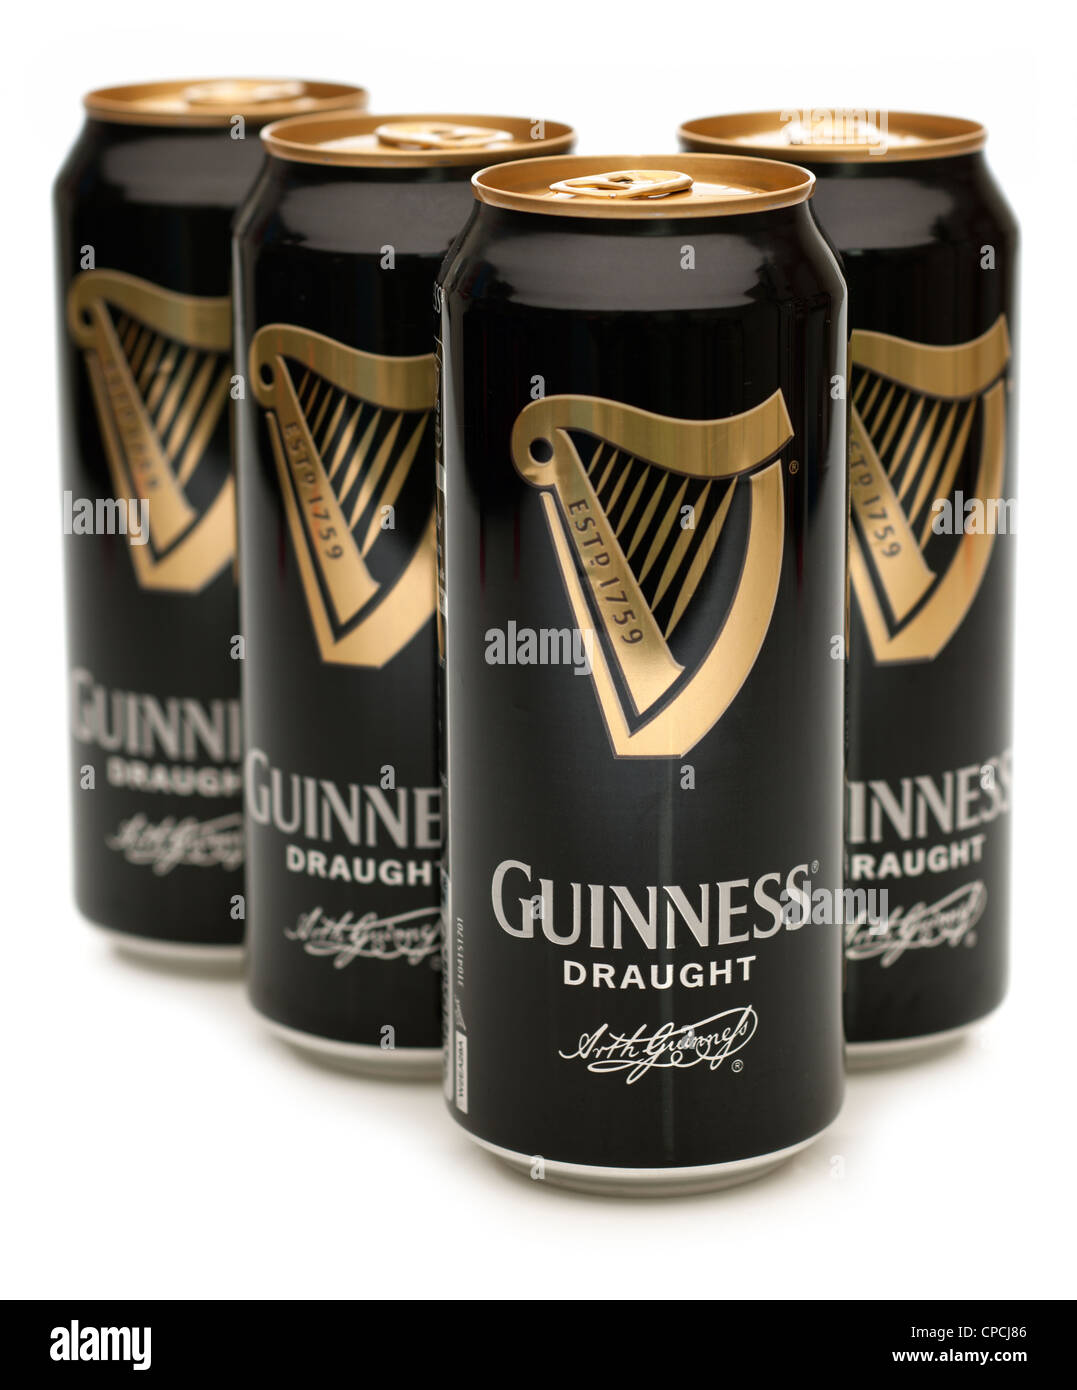 Four cans of draught guinness - Stock Image